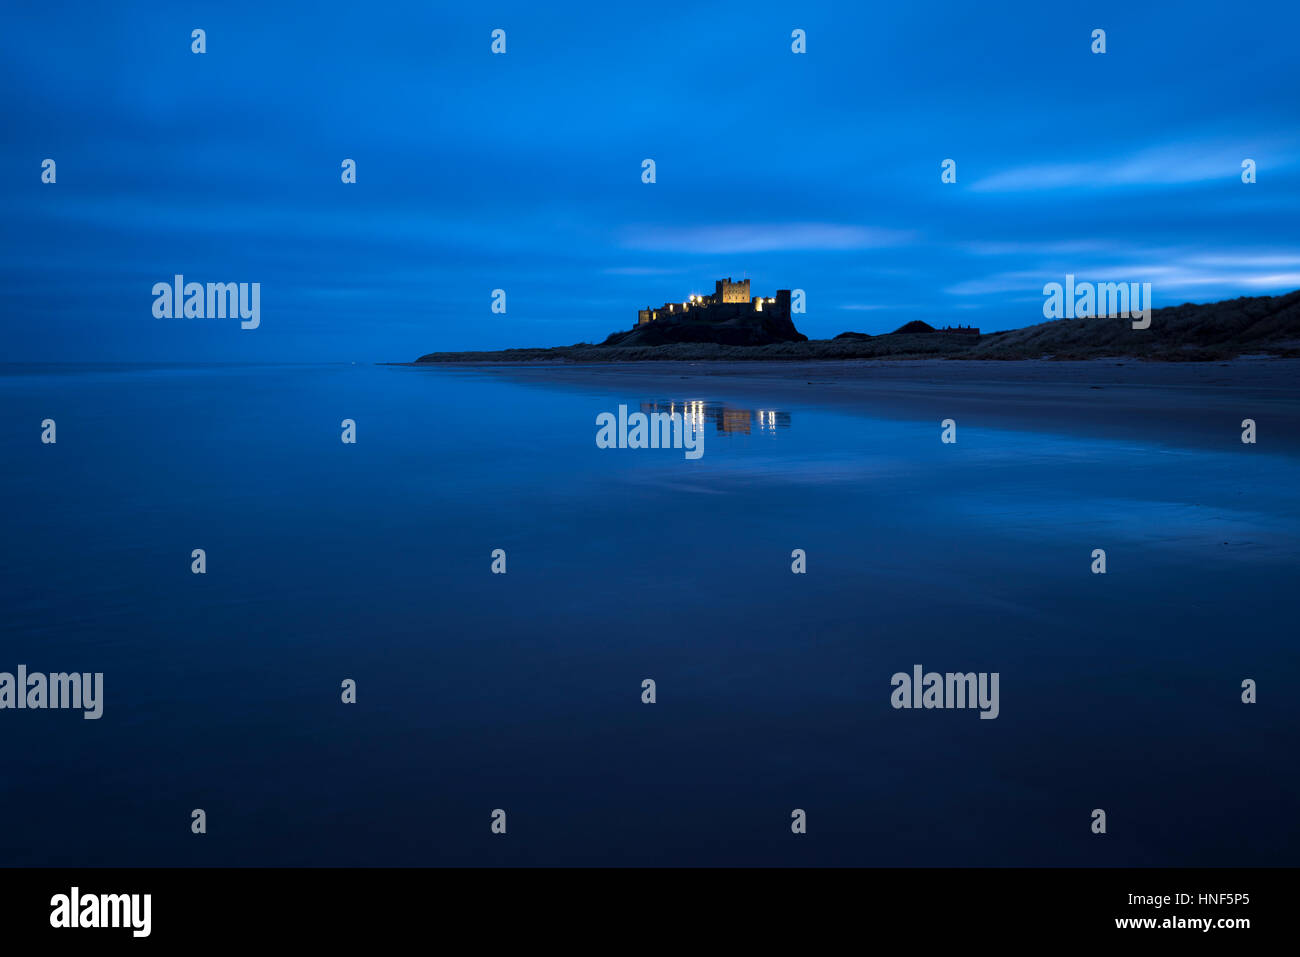 Bamburgh Castle lit up in the pre-dawn light on the Northumberland Coast. - Stock Image